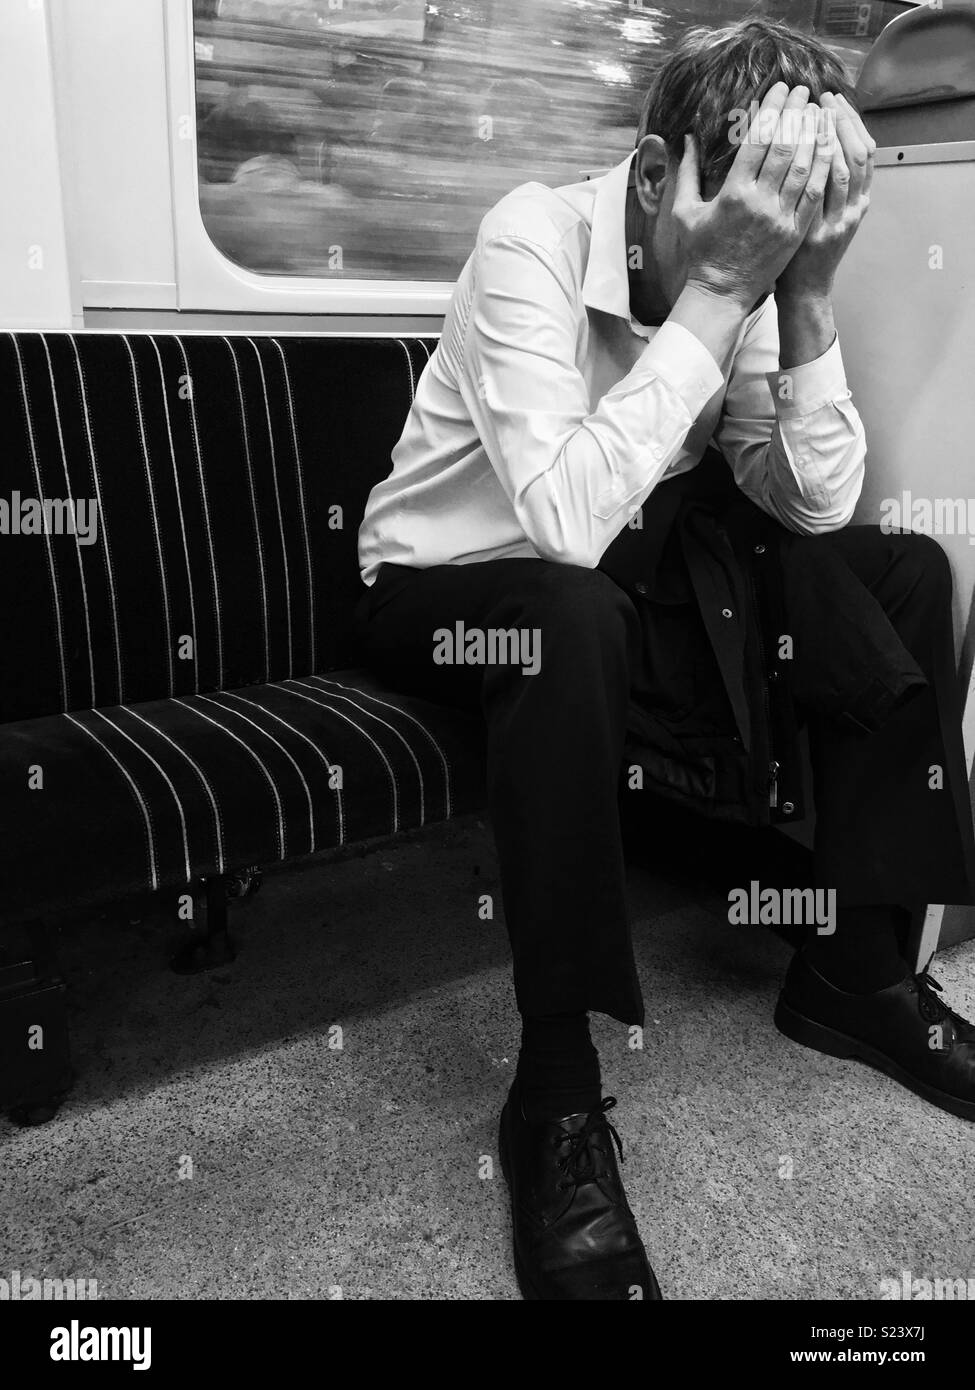 MAN SITTING ON TRAIN COVERING FACE WITH HANDS - Stock Image